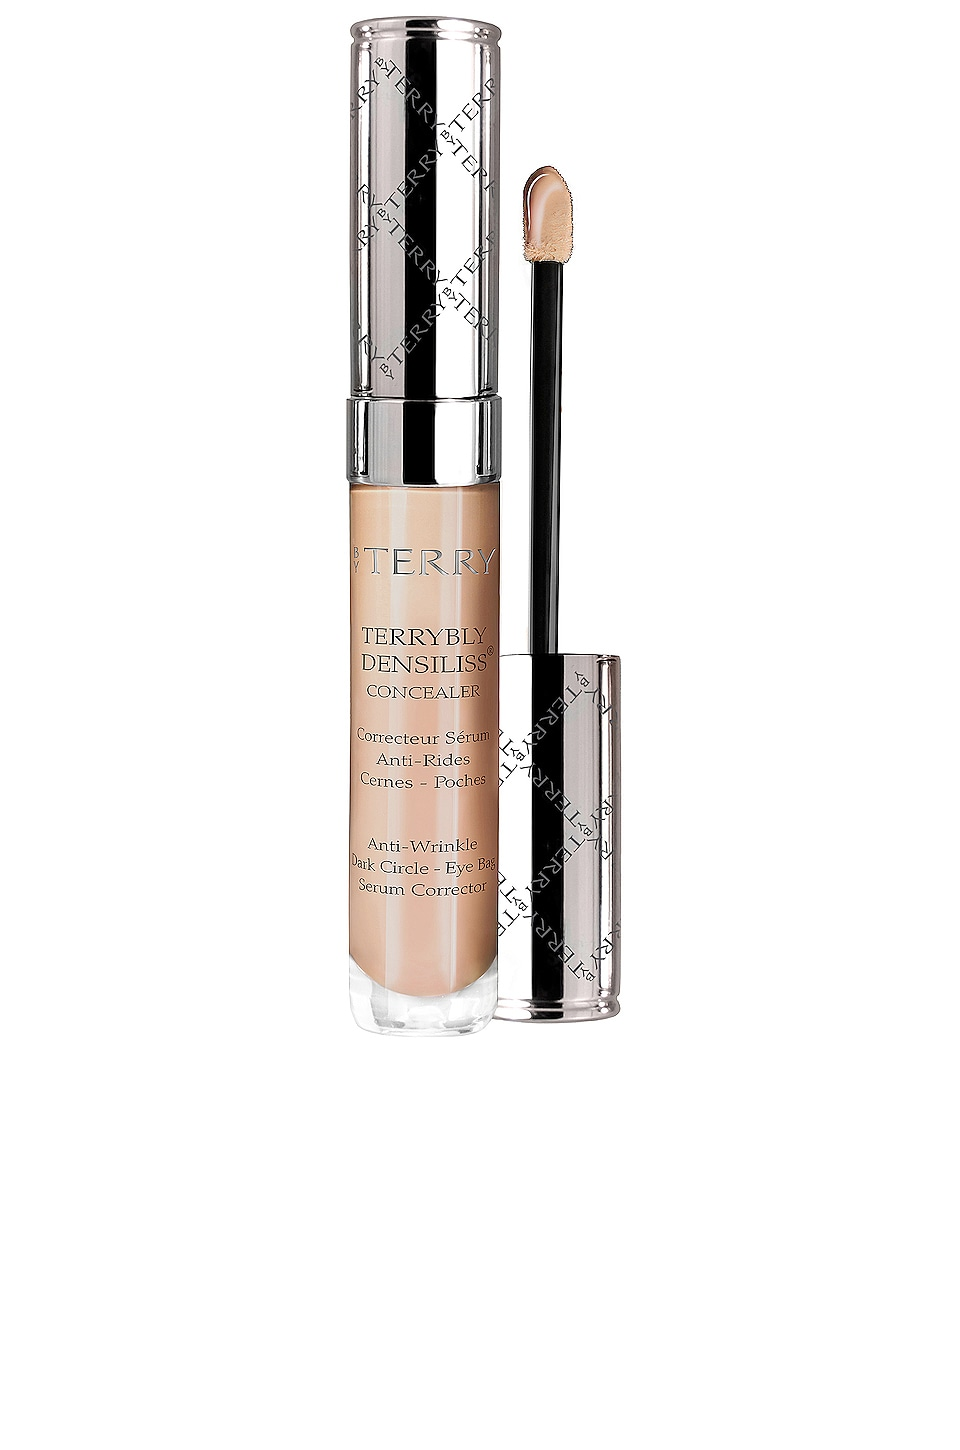 By Terry Terrybly Densiliss Concealer in Desert Beige